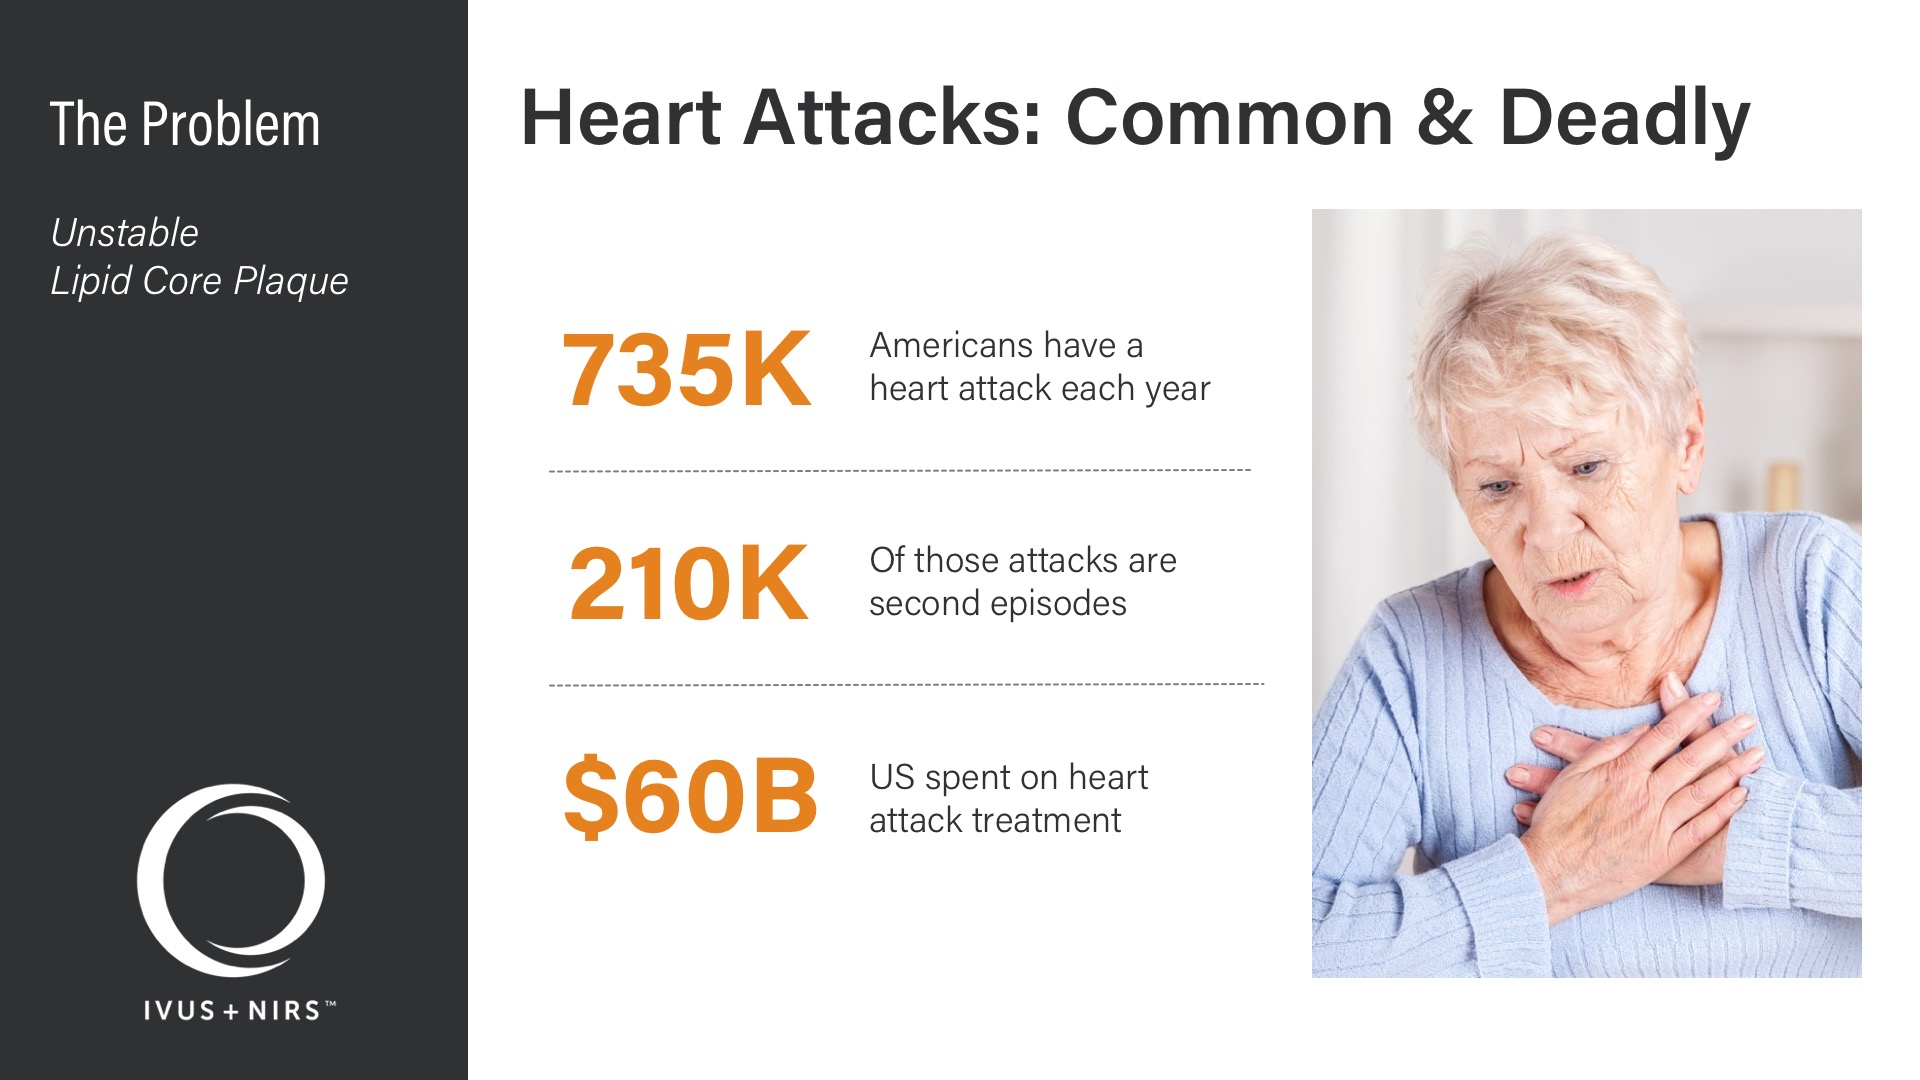 Infraredx Corporate Deck - Problem - Heart Attacks: Common & Deadly